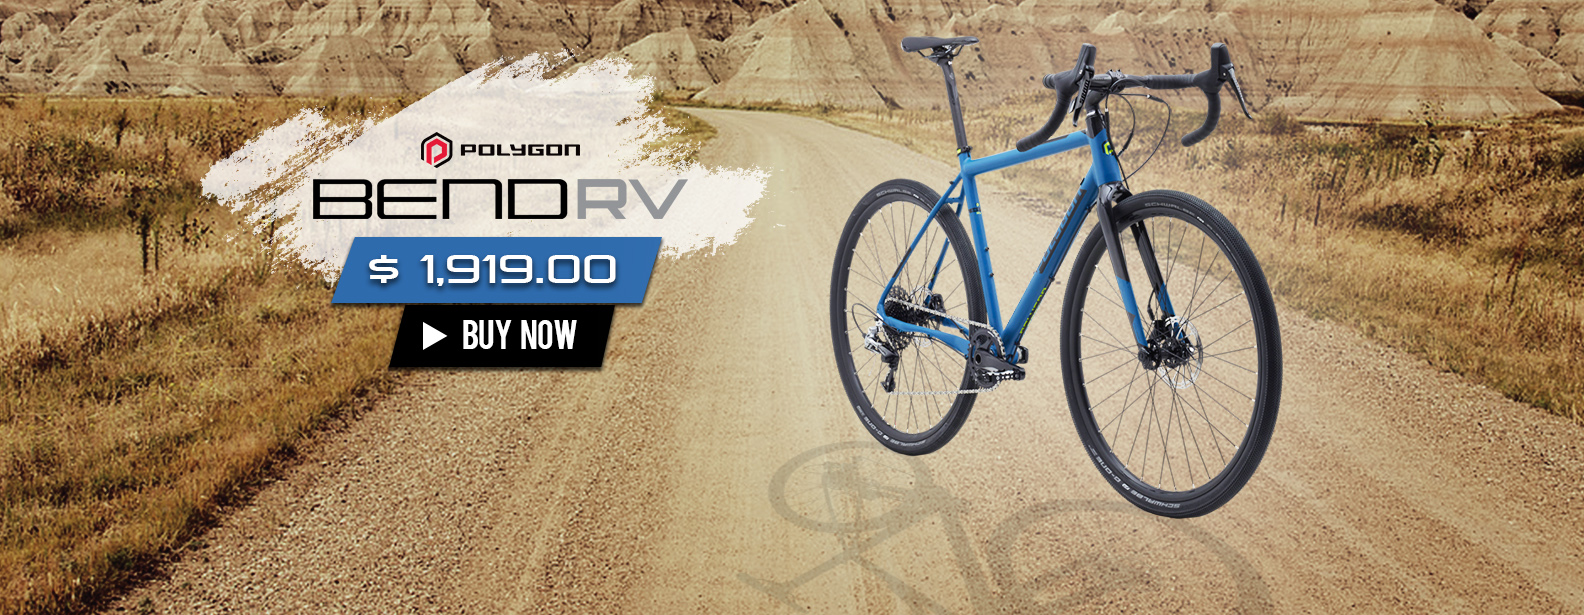 Polygon Bend RV Gravel Bike